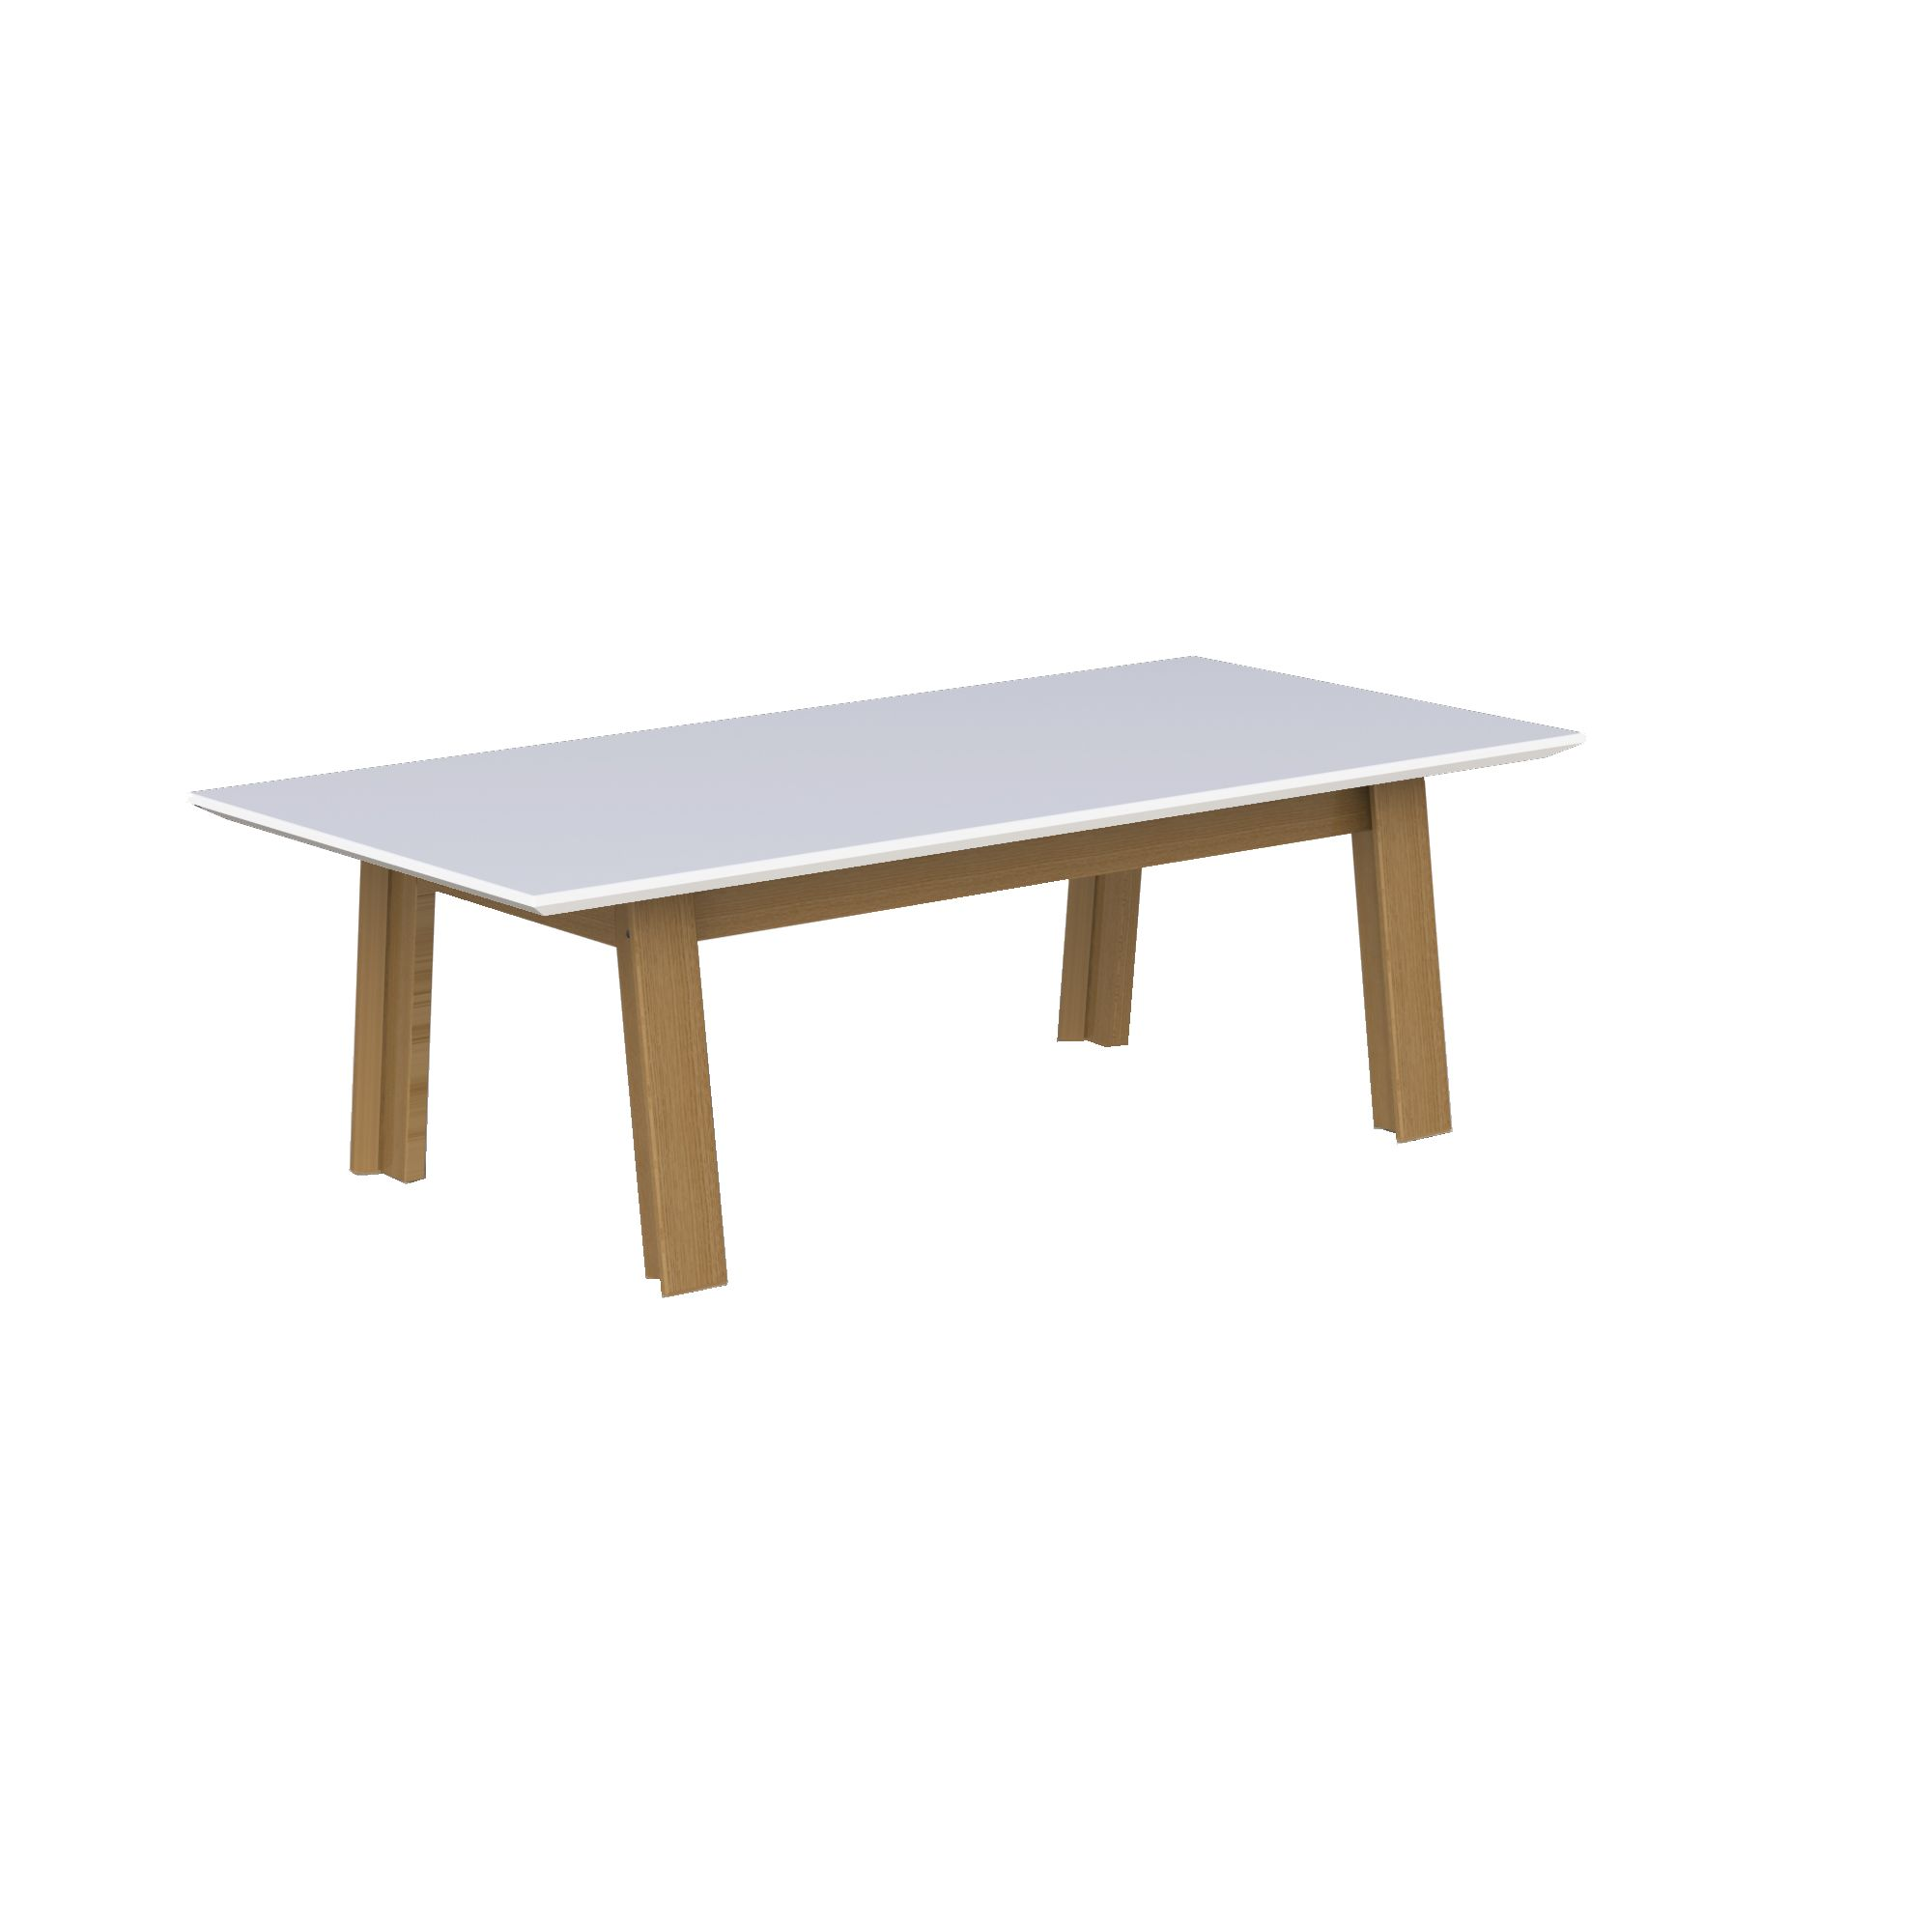 77714614?wid=2000&hei=1475&fmt=png-alpha Meilleur De De Table Basse Italienne Design